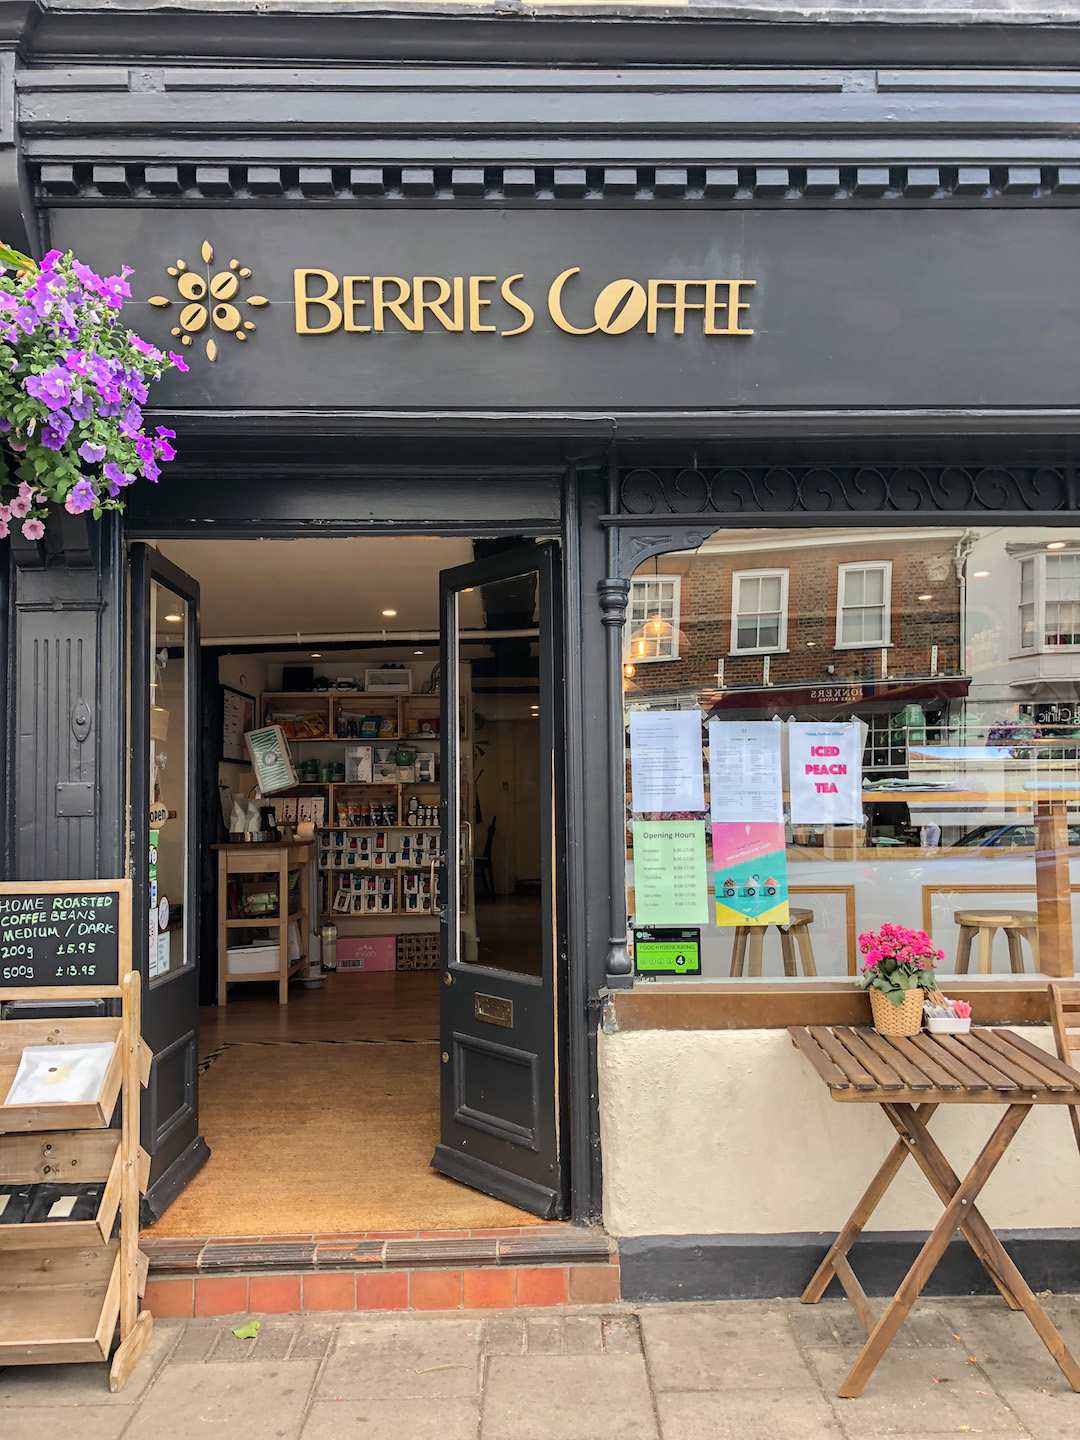 Berries Coffee, Henley on Thames